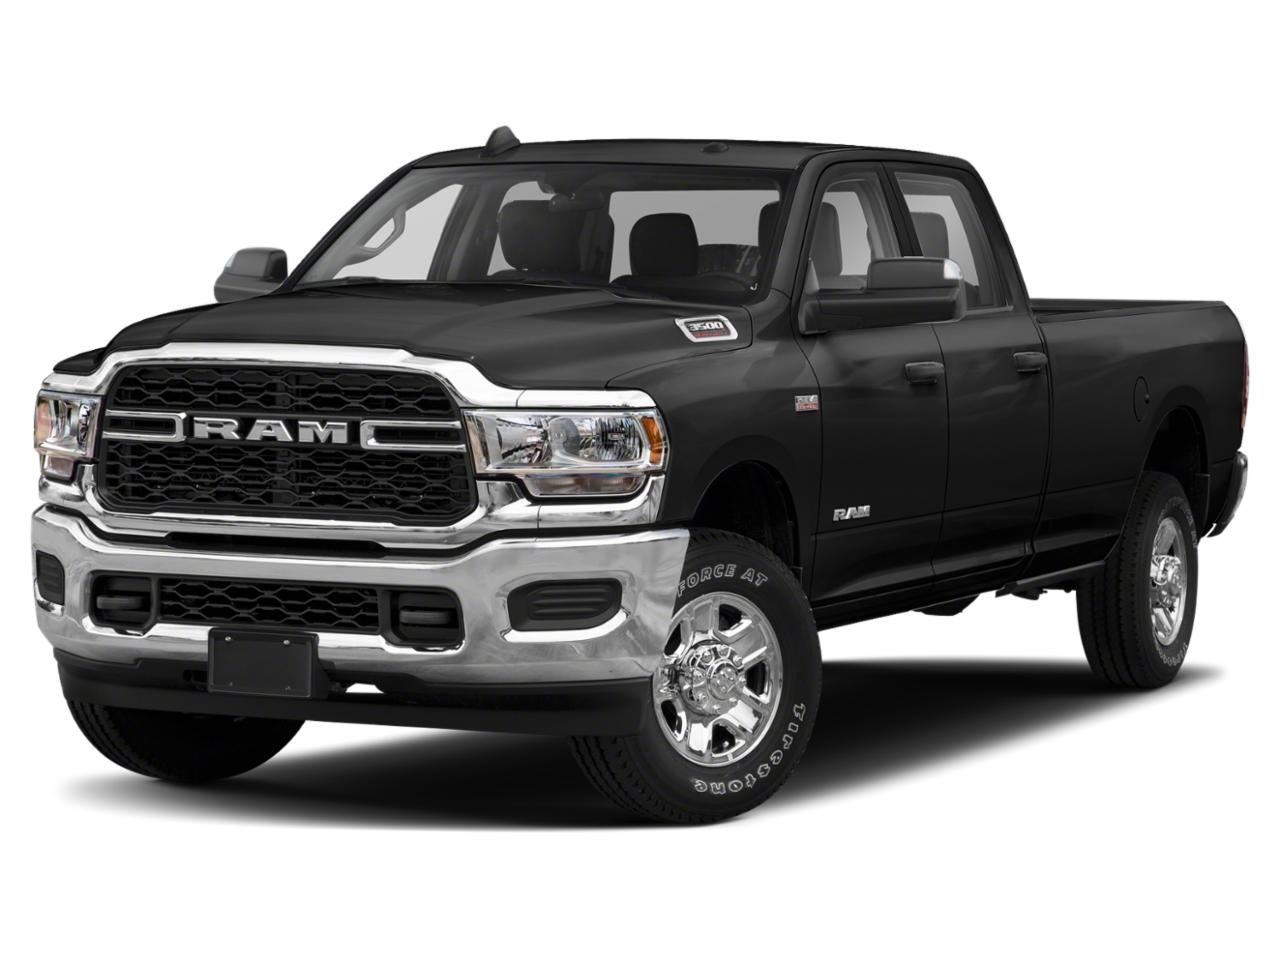 2019 Ram 3500 Vehicle Photo in Fort Worth, TX 76116